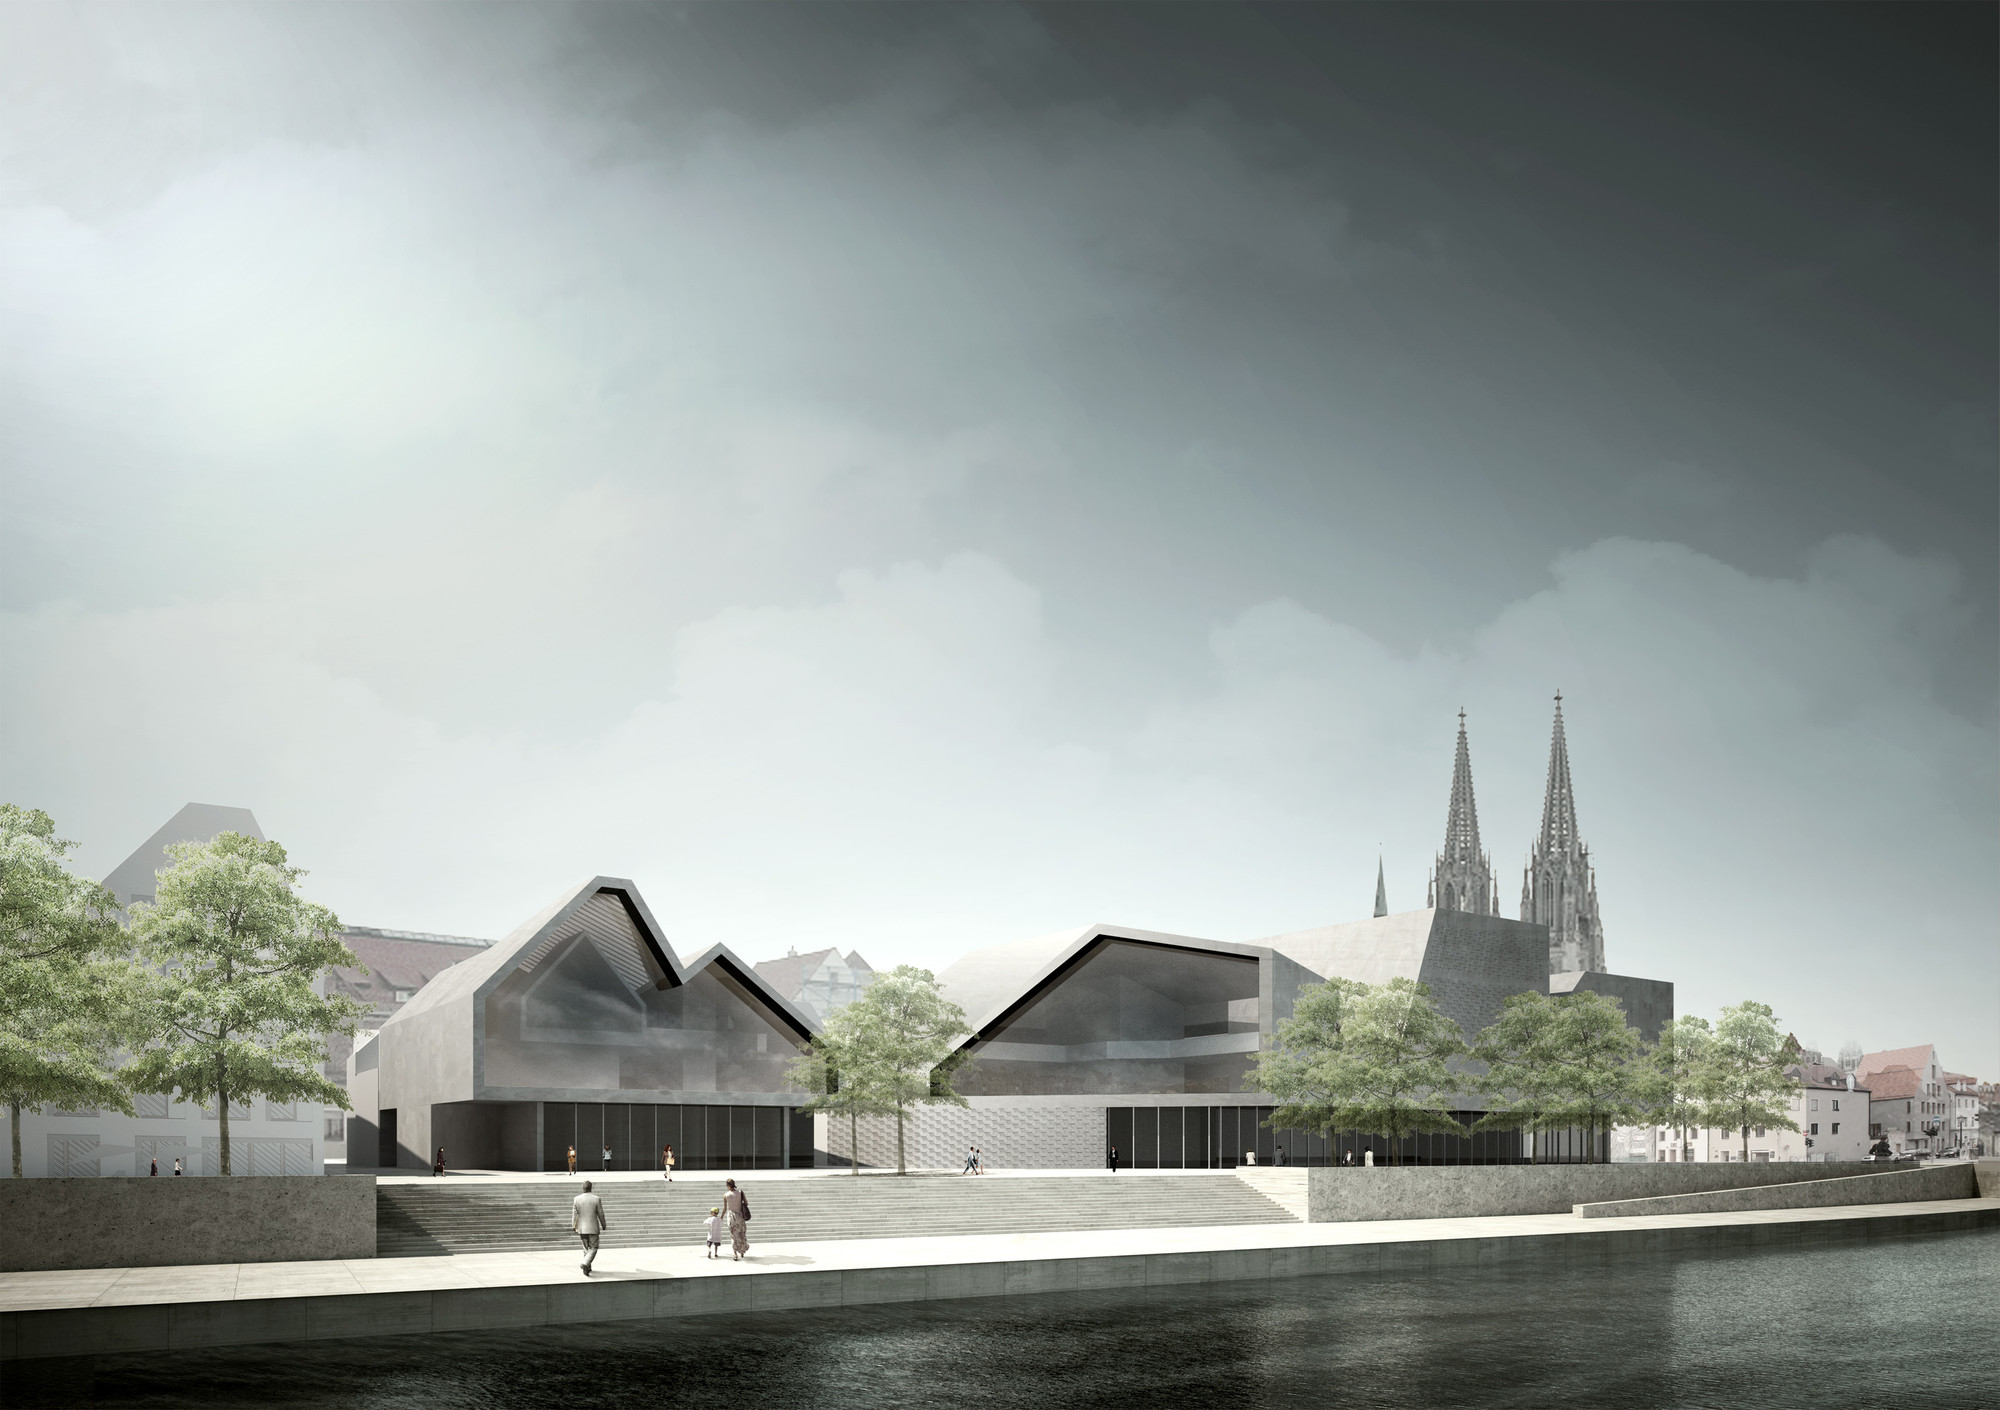 Museum of Bavarian History Competition Entry / Simon Takasaki Architecture + Research Studio, Courtesy of Simon Takasaki & Dietmar Köring